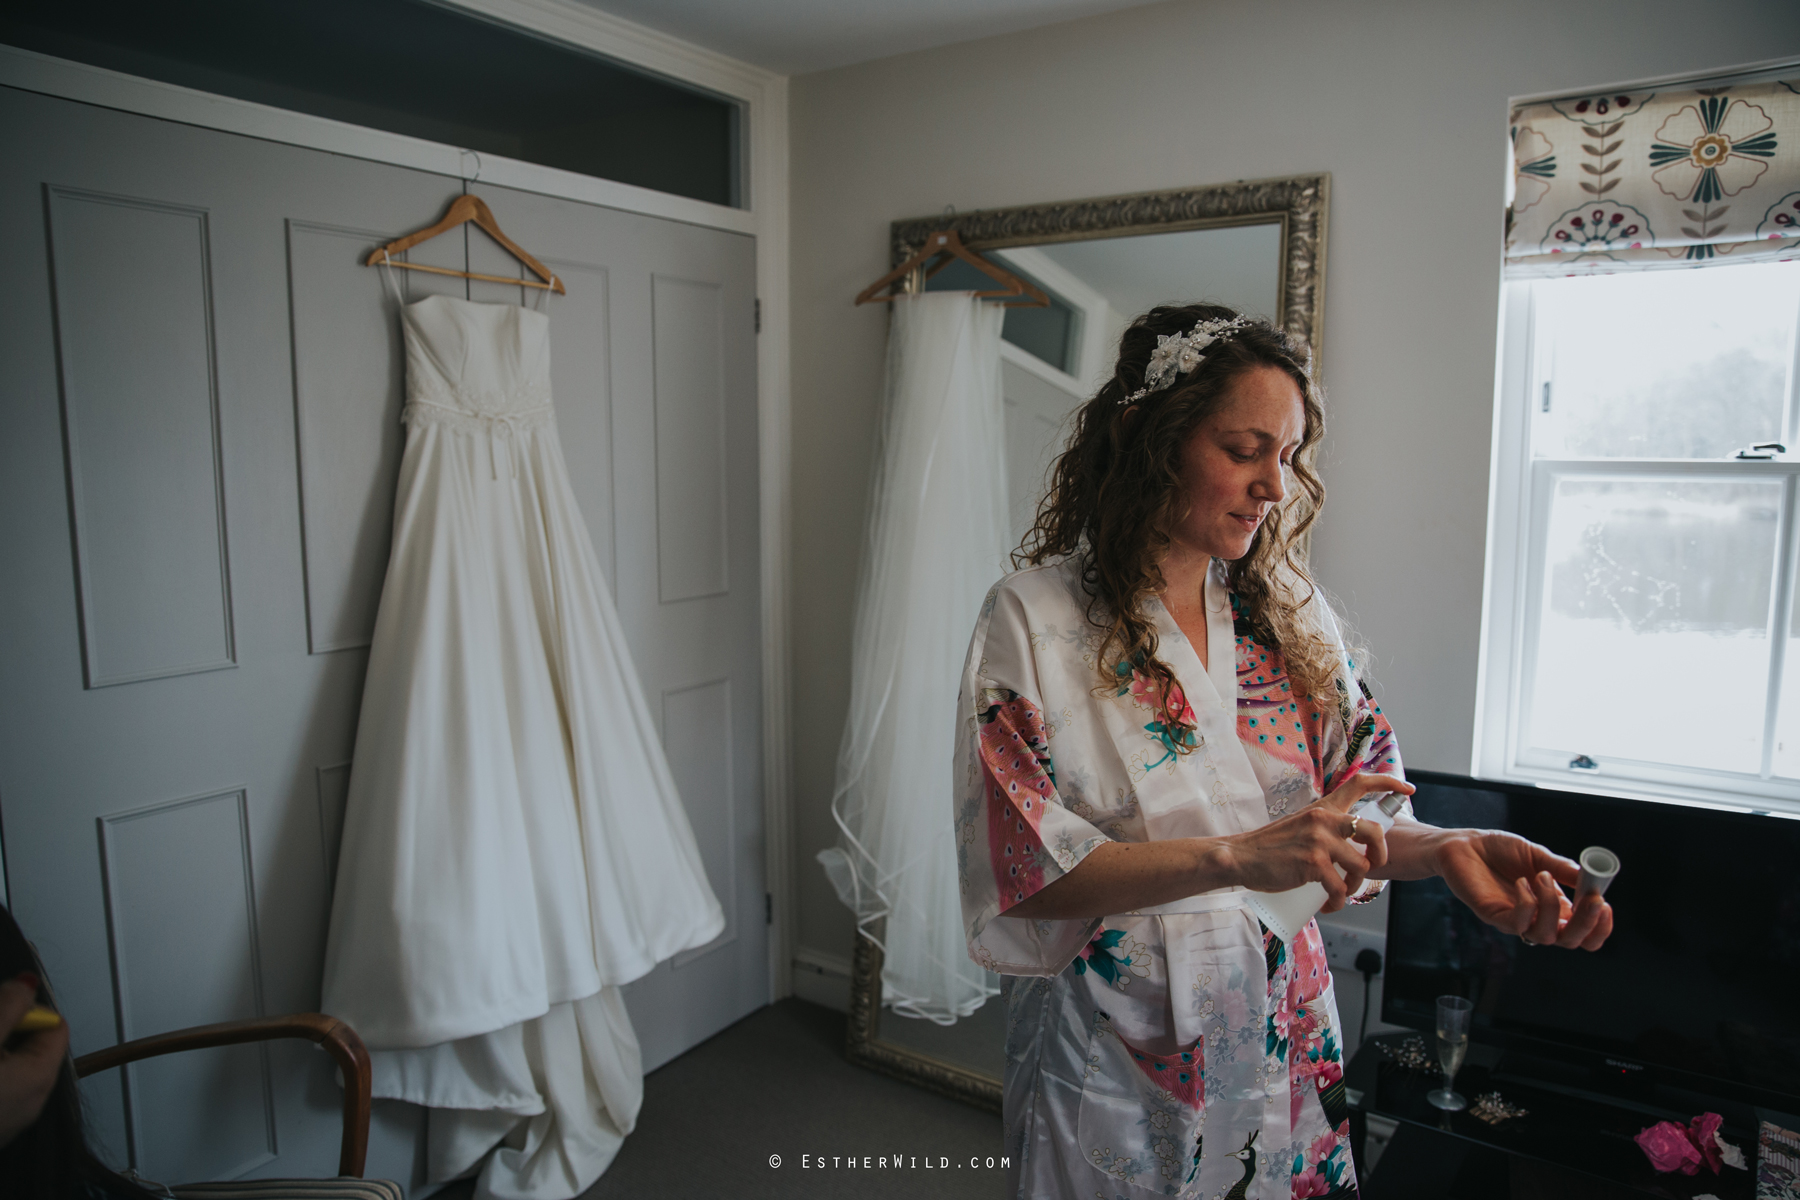 The_BoatHouse_Wedding_Venue_Ormesby_Norfolk_Broads_Boat_Wedding_Photography_Esther_Wild_Photographer_IMG_0265.jpg